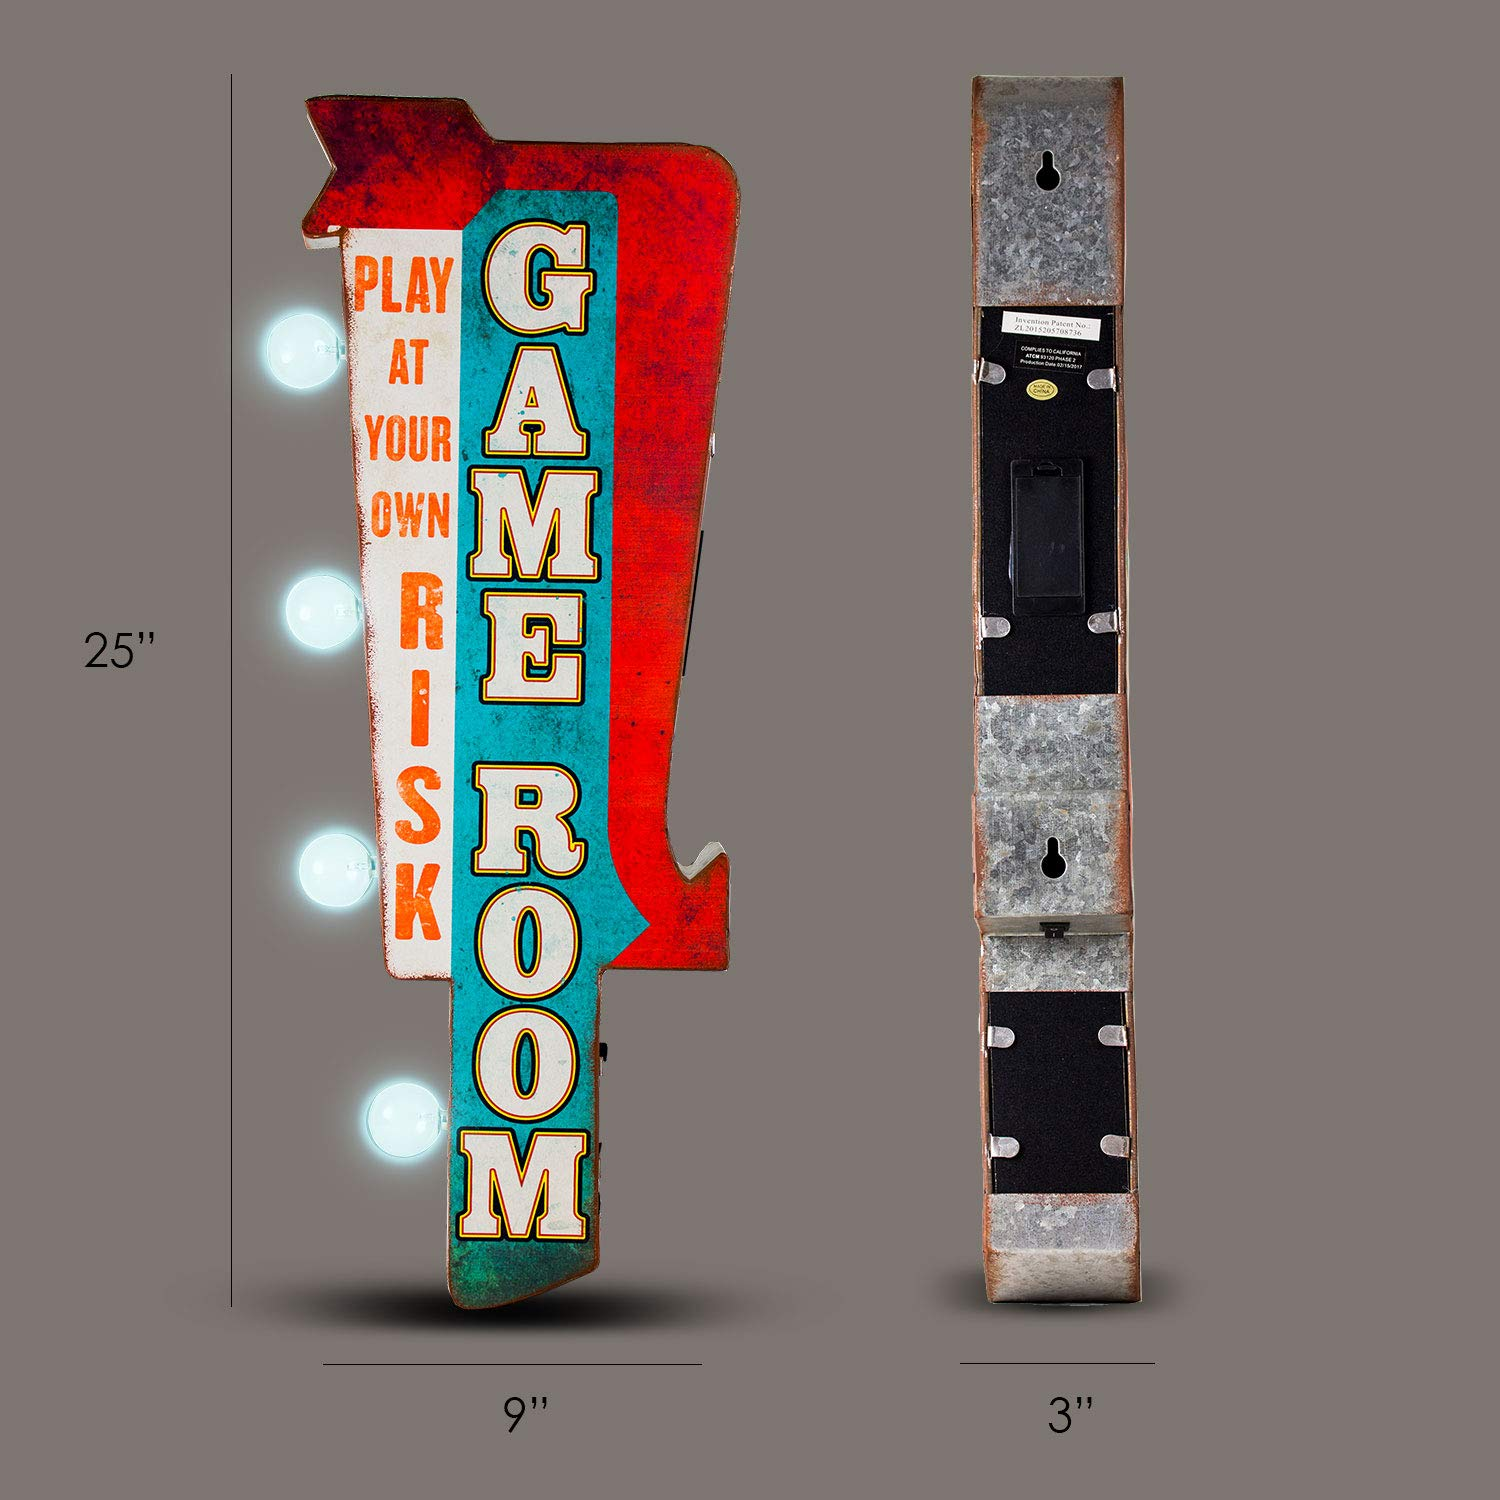 Crystal Art Play at Your Own Risk Game Room Vintage Double Sided Marquee LED Sign Wall Decor for Man Cave Bar Garage 9 L x 4 W x 25 H Multicolored